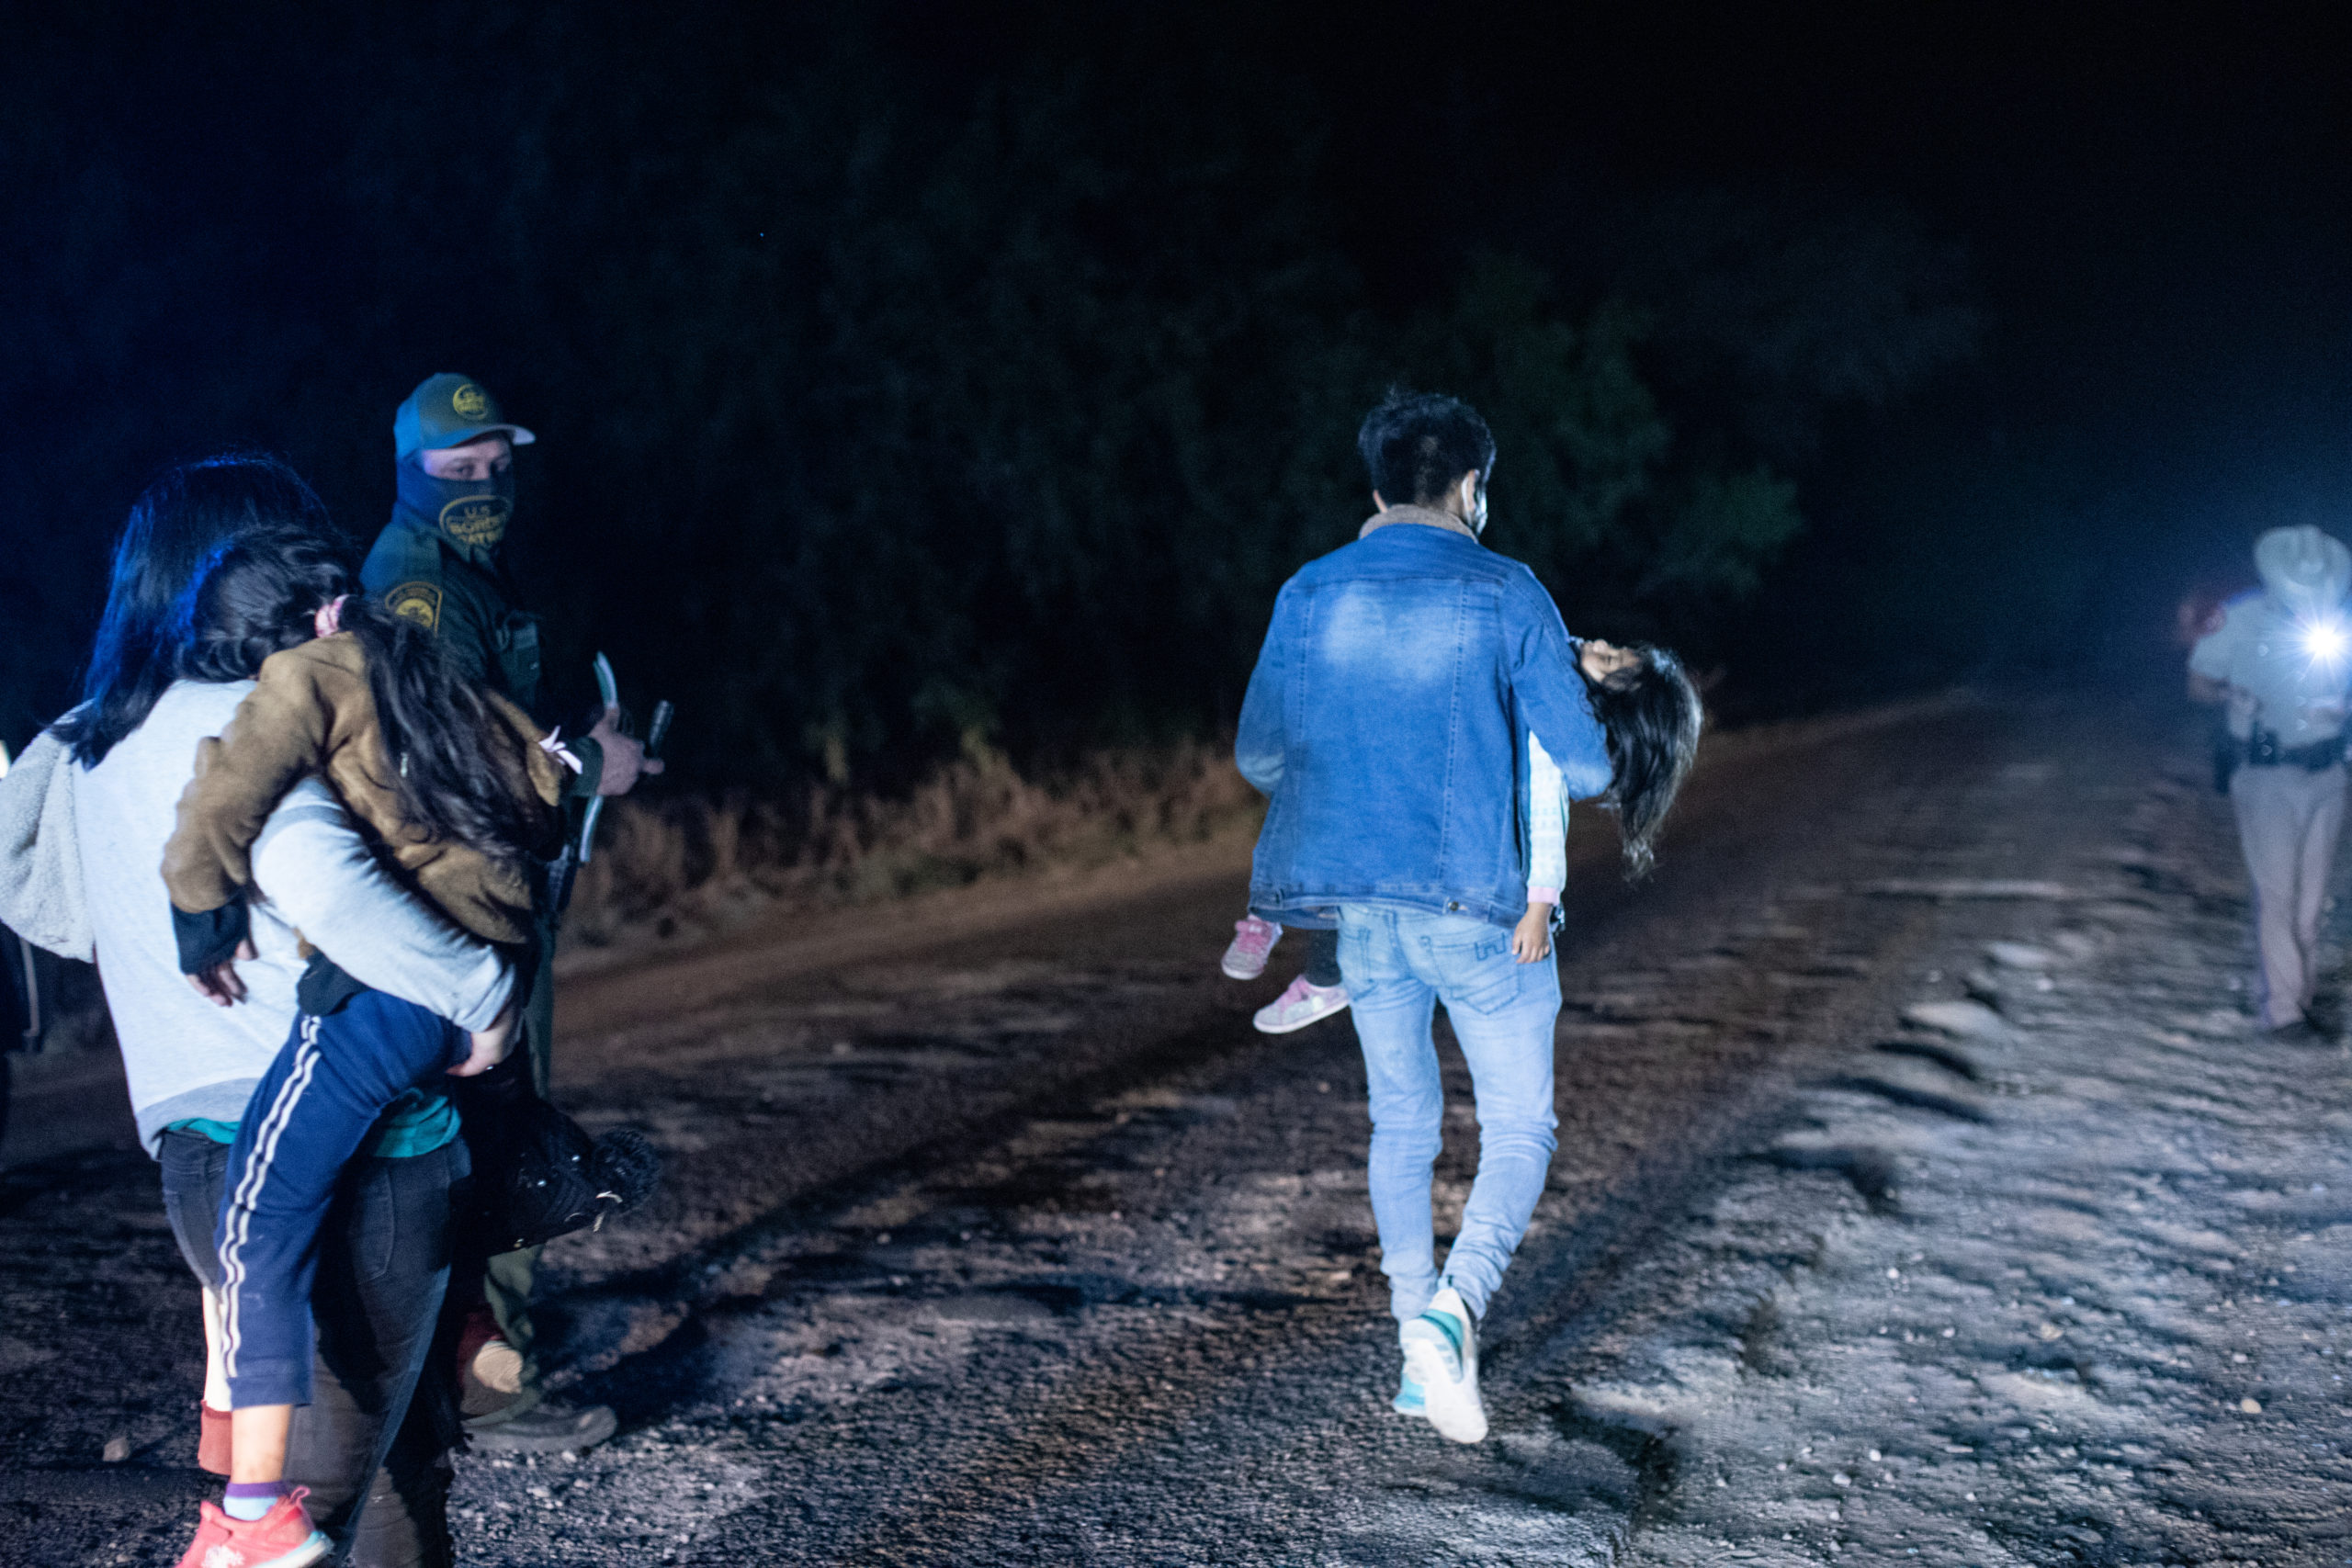 Illegal migrants walk towards law enforcement officials who gathered biometrical data from them before transporting them to a processing facility in La Joya, Texas, on March 25, 2021. (Kaylee Greenlee. - Daily Caller News Foundation)